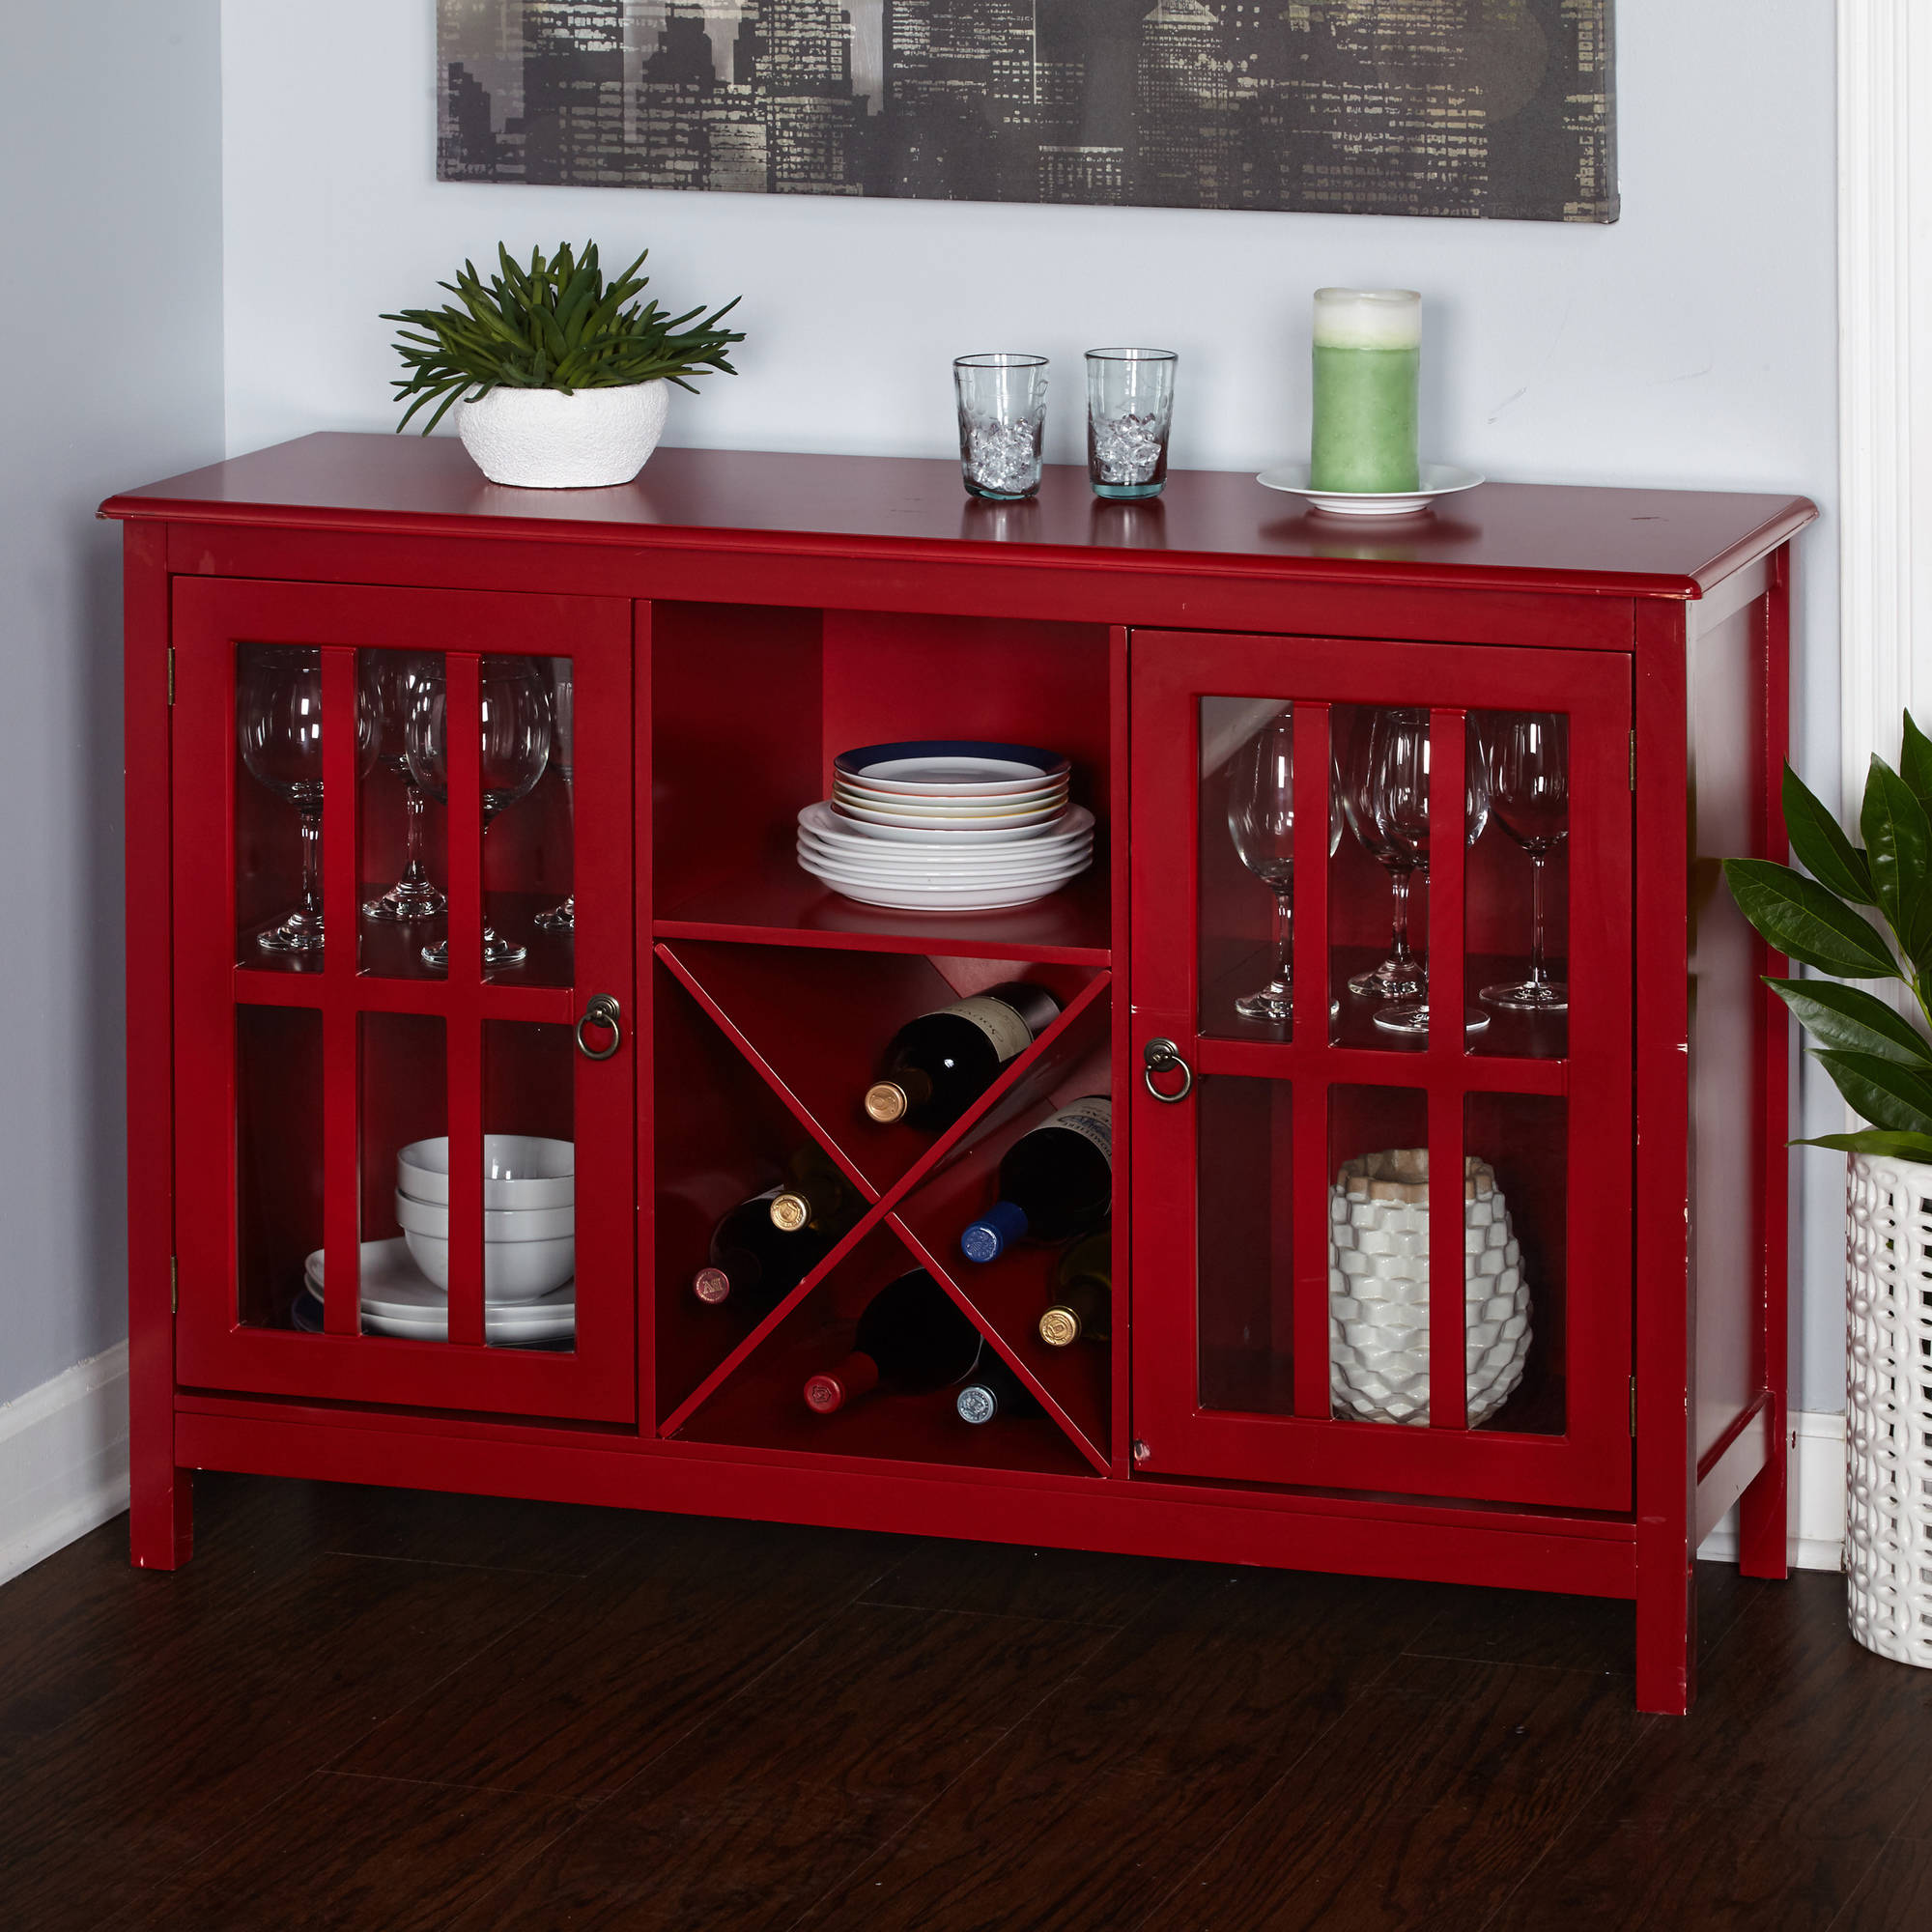 creative fantastic on weed wine adams with eater decor design rack most jk of ideas interior racks home for